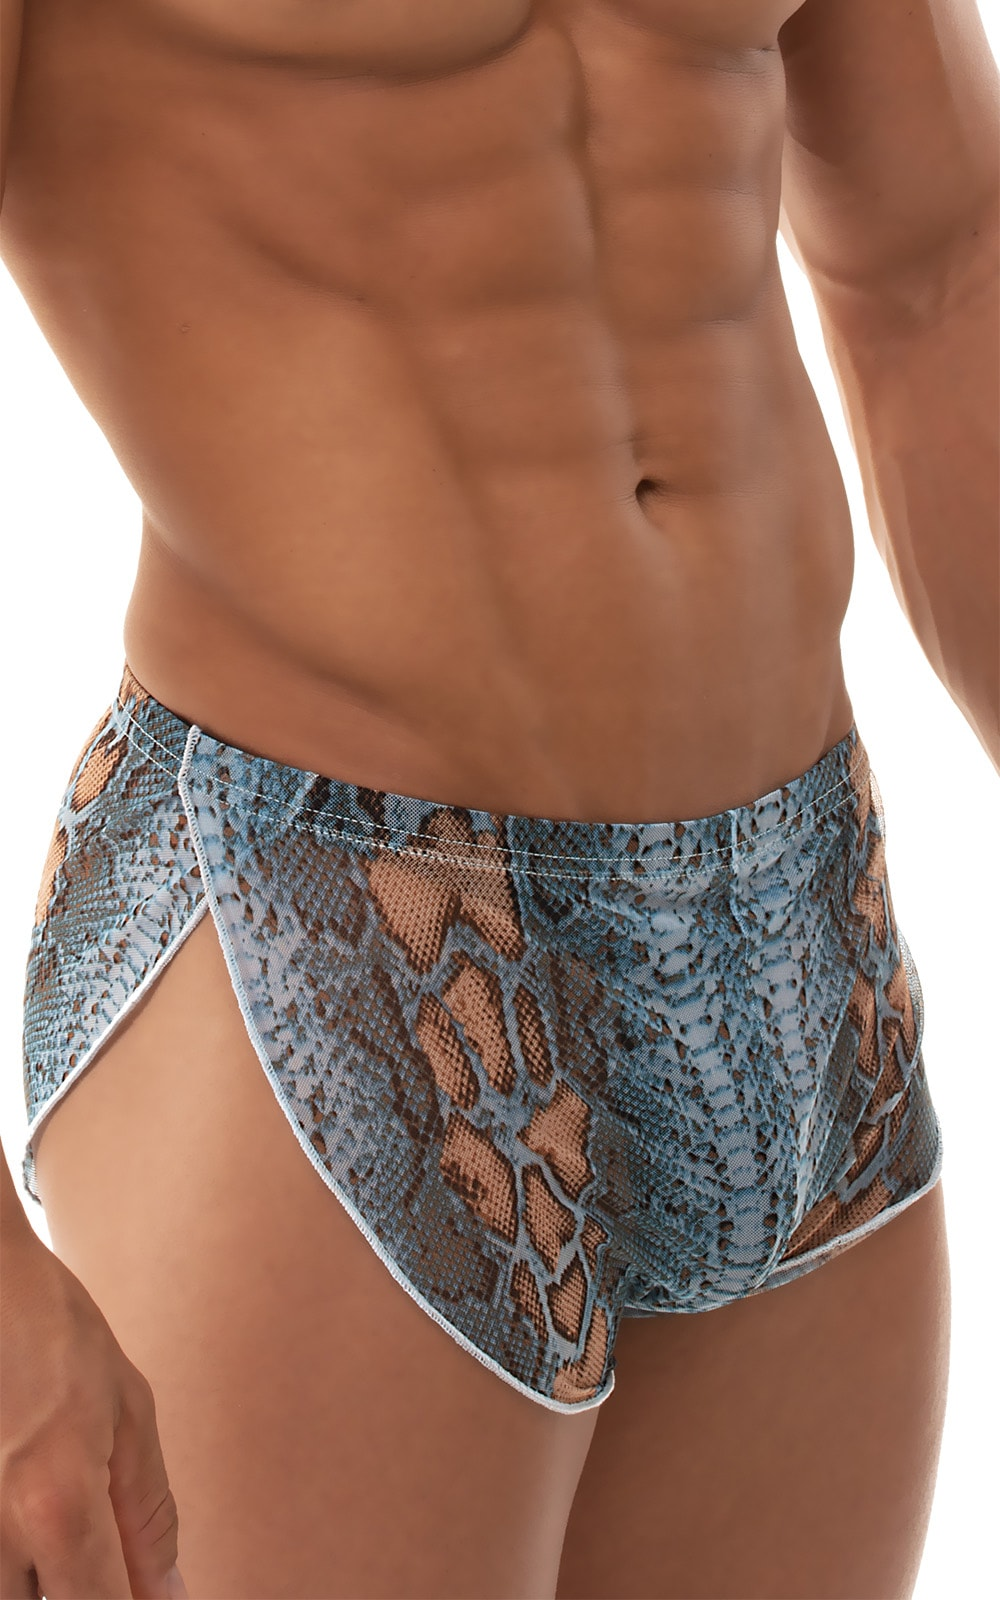 Swimsuit Cover Up Split Running Shorts in Turquoise Python Stretch mesh 4